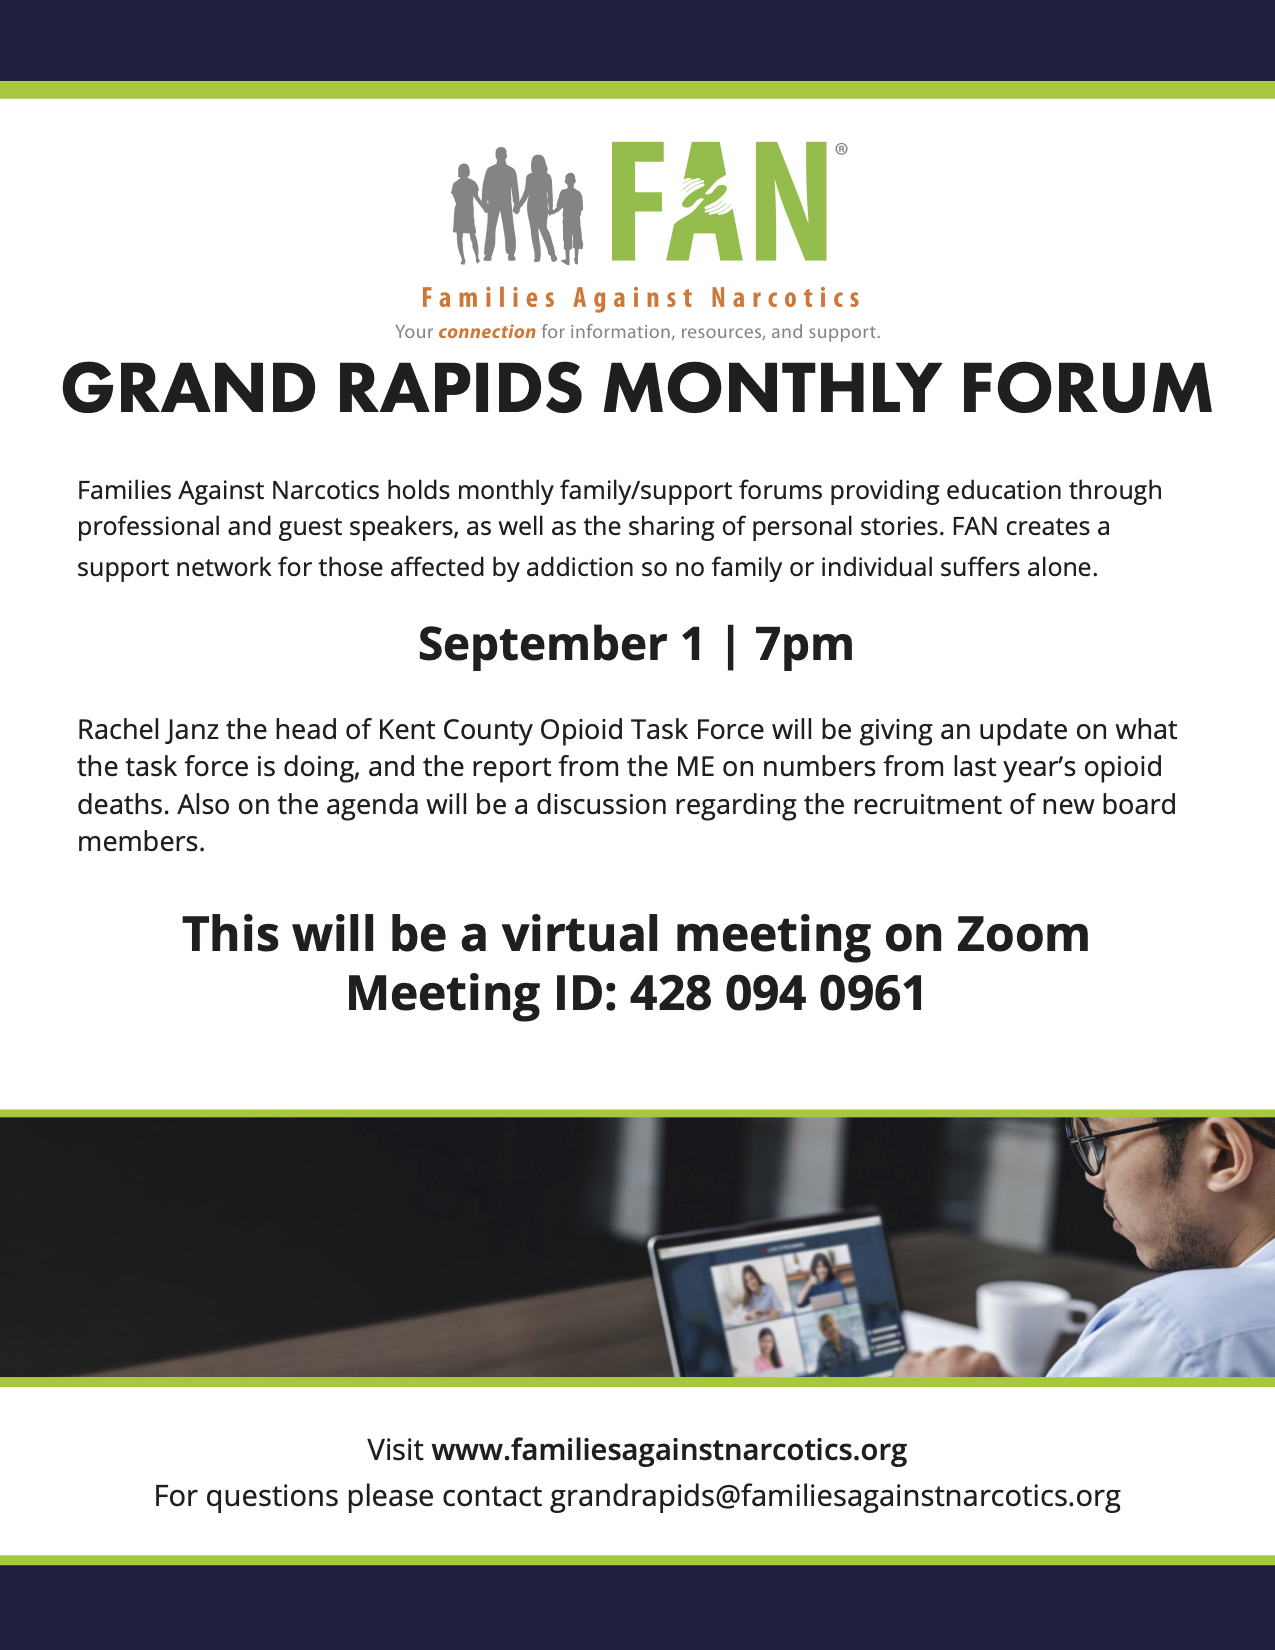 Grand Rapids Families Against Narcotics (FAN) Meeting Tonight